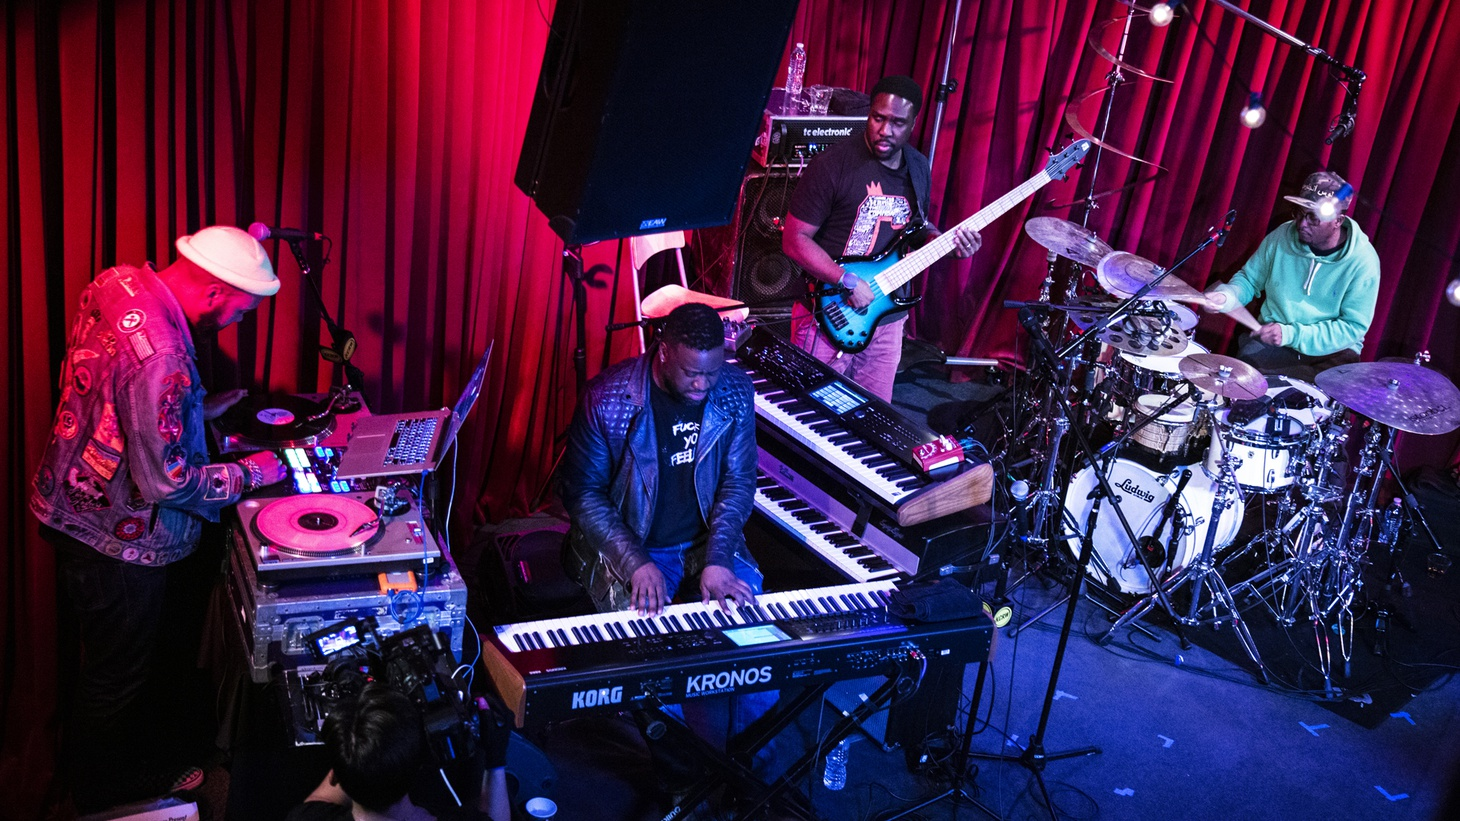 Robert Glasper bridges the old school with the new —fusing elements of jazz, hip-hop, and R&B. He performed a powerful set of music right before COVID took hold. Revisit this stellar performance from the famed Apogee Studio.